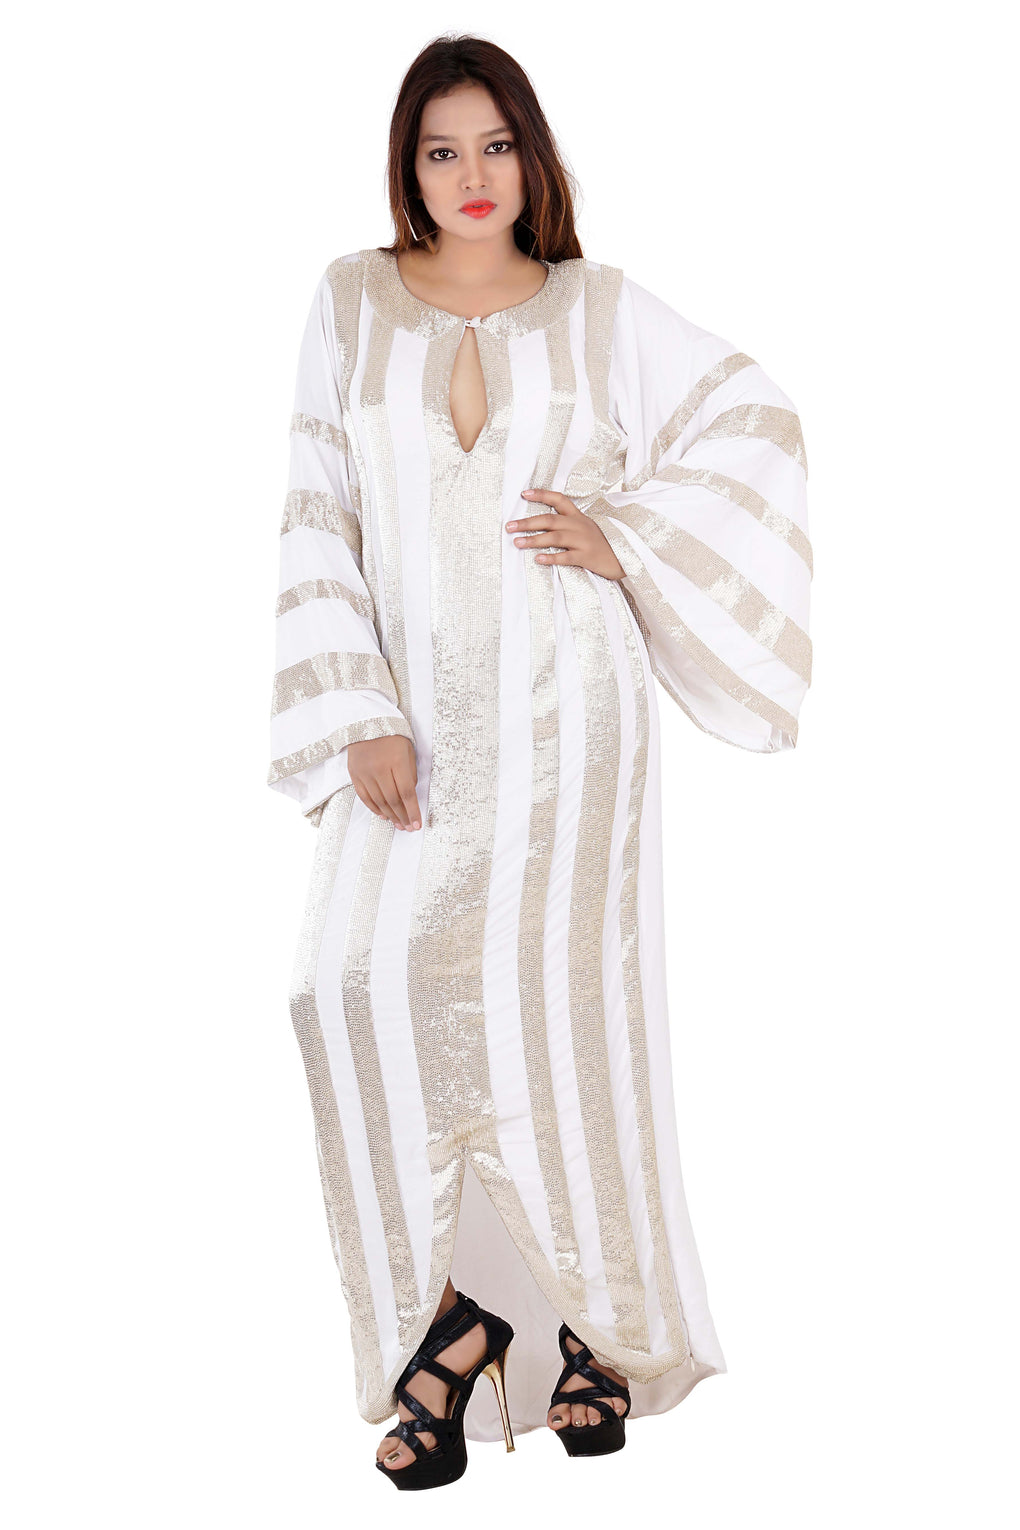 Dubai Kaftan Wedding kaftan Long Dress Farasha Maxi Dress Jalabiaya Abaya Caftan - Silk kaftan